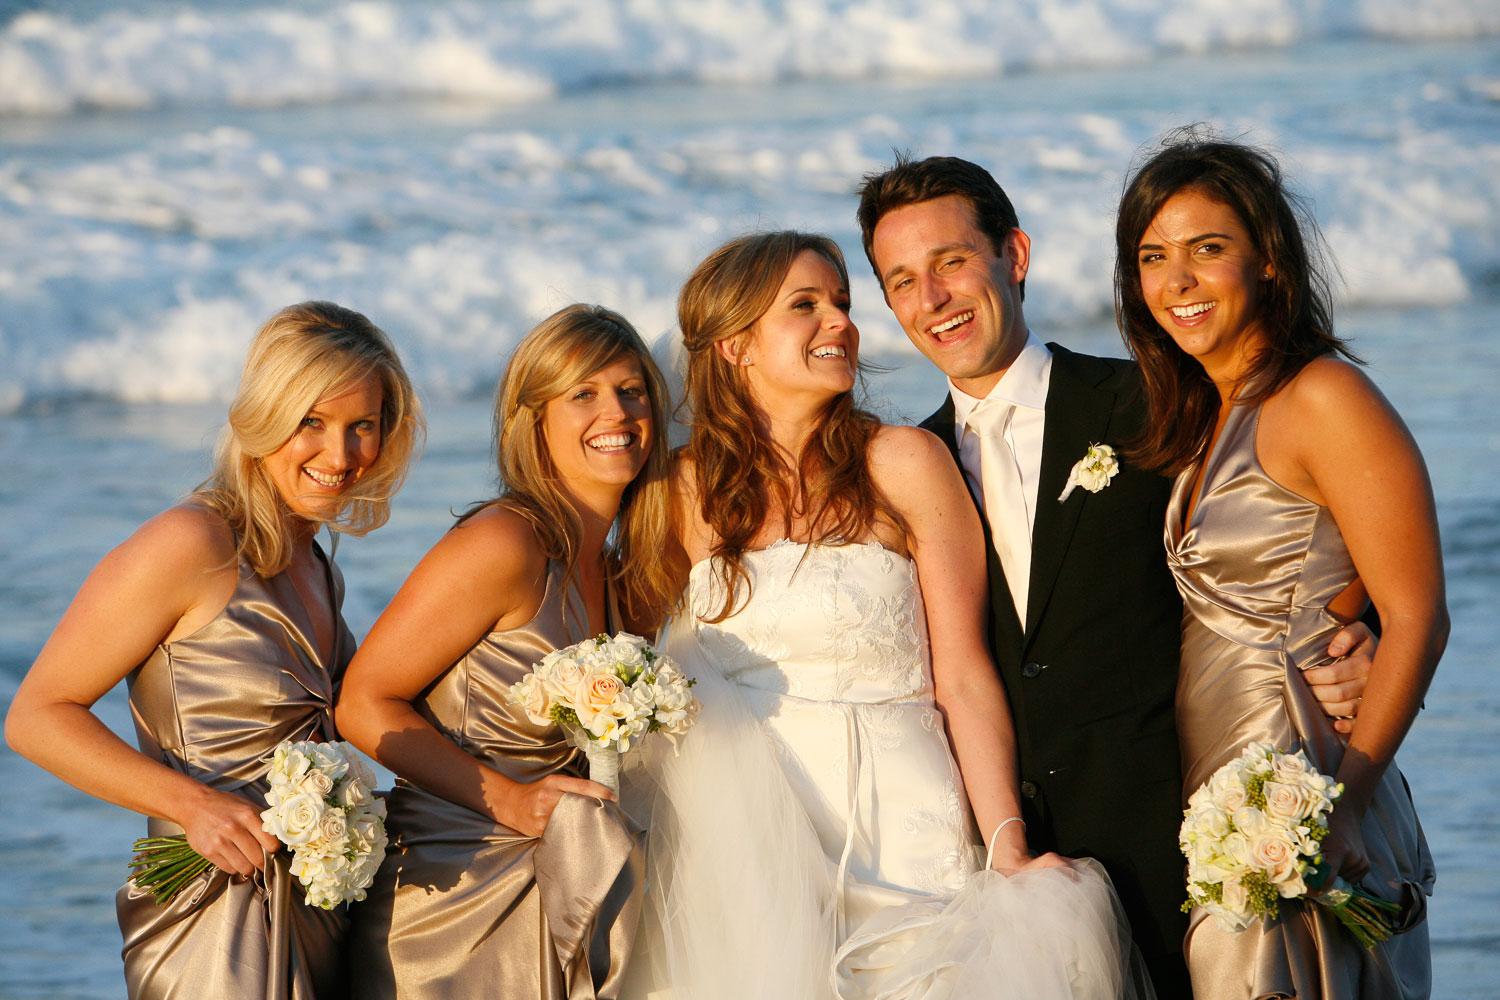 bridal party bride and groom with brides maids noosa heads